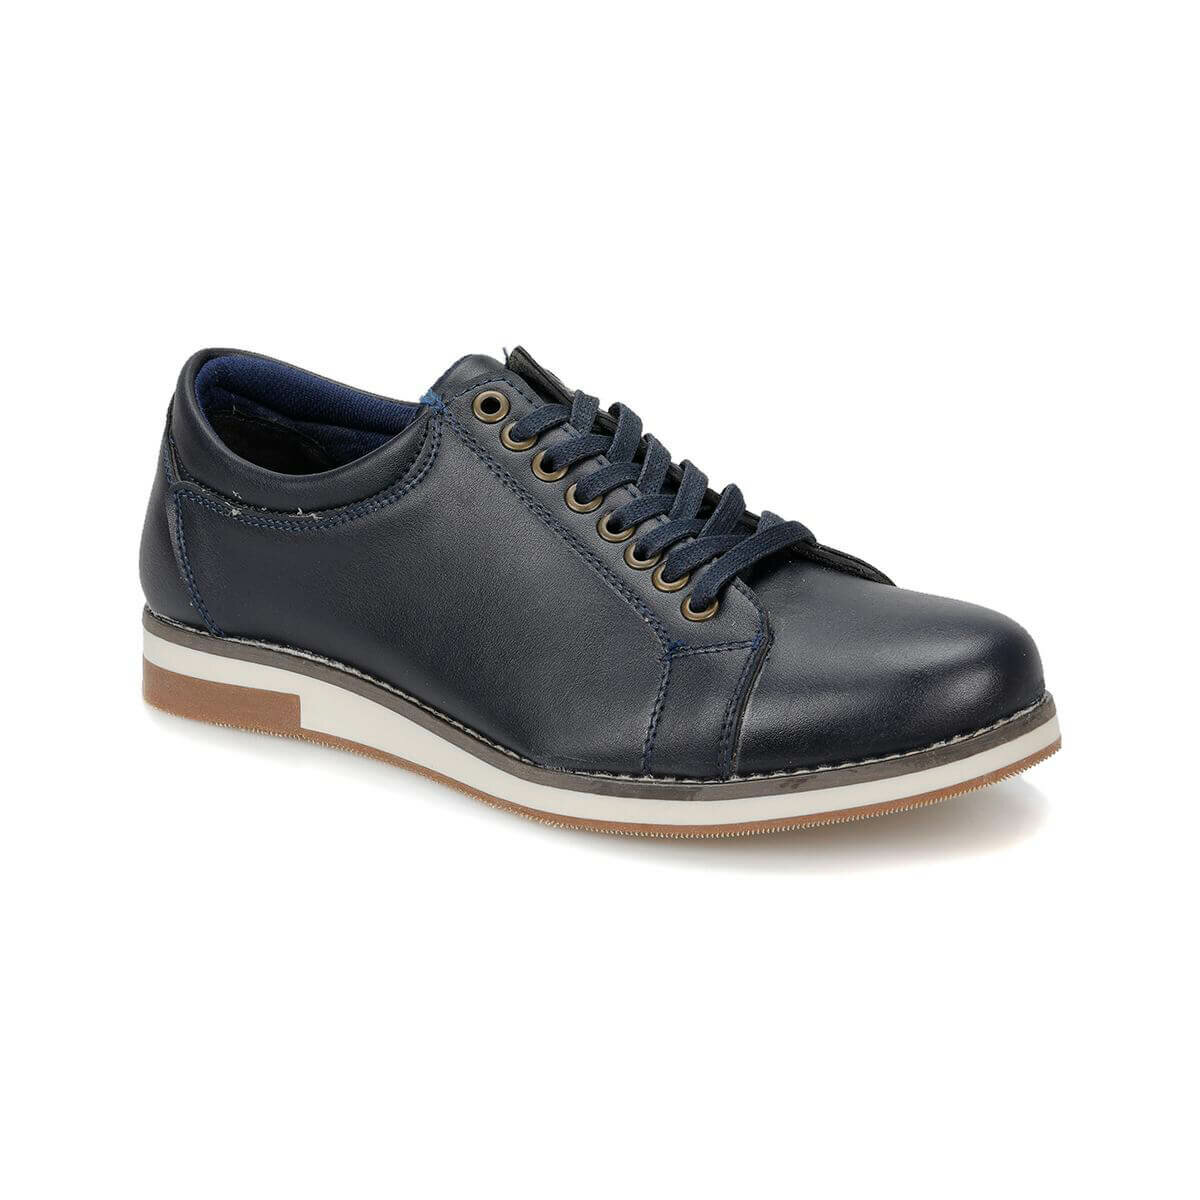 FLO 407. Navy Blue Men 'S Shoes Oxide